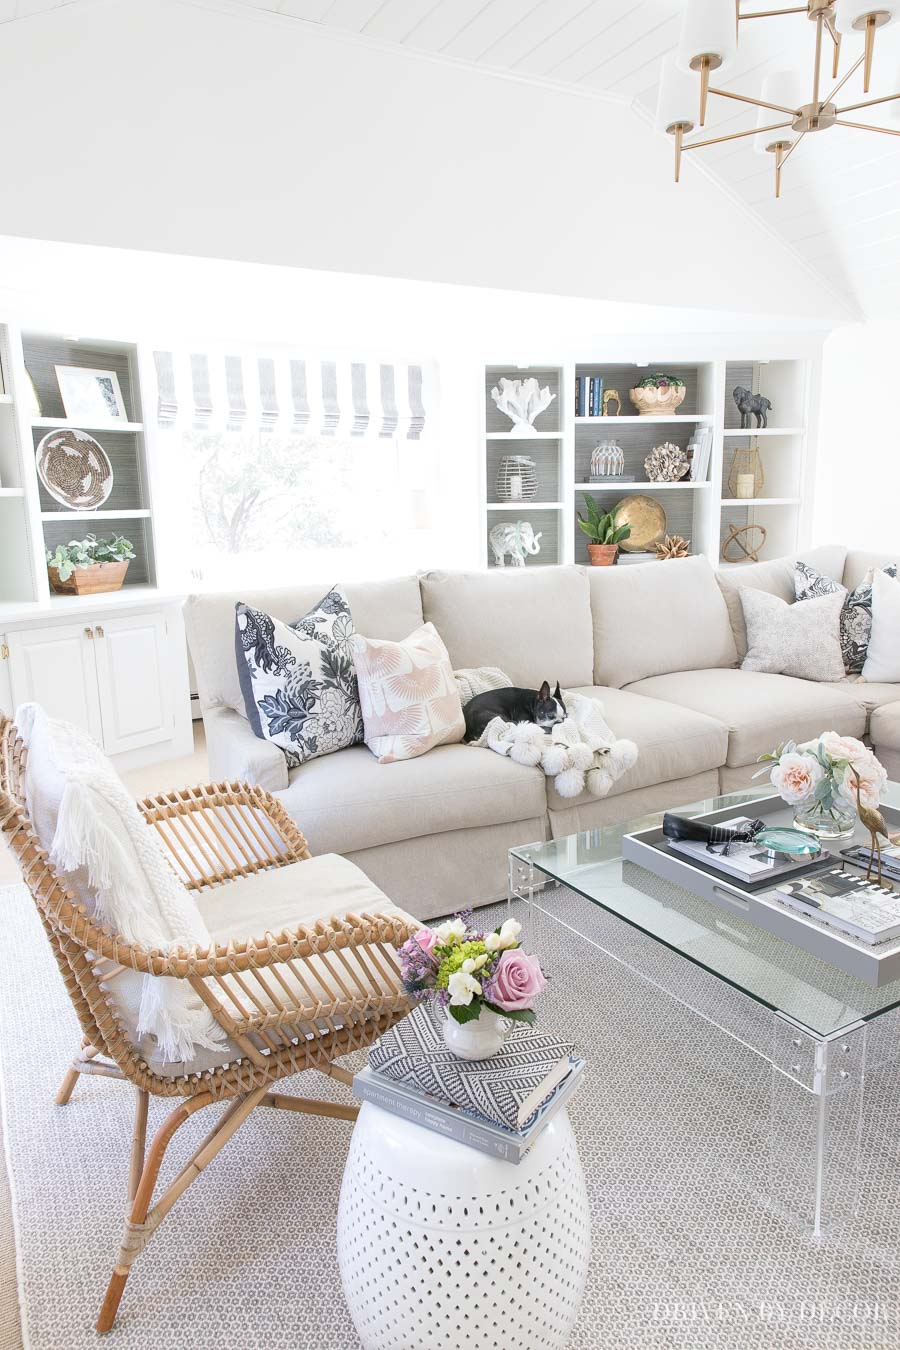 Living Room Decor Items Four Spring Decorating Must-haves (that Will Put You Ahead